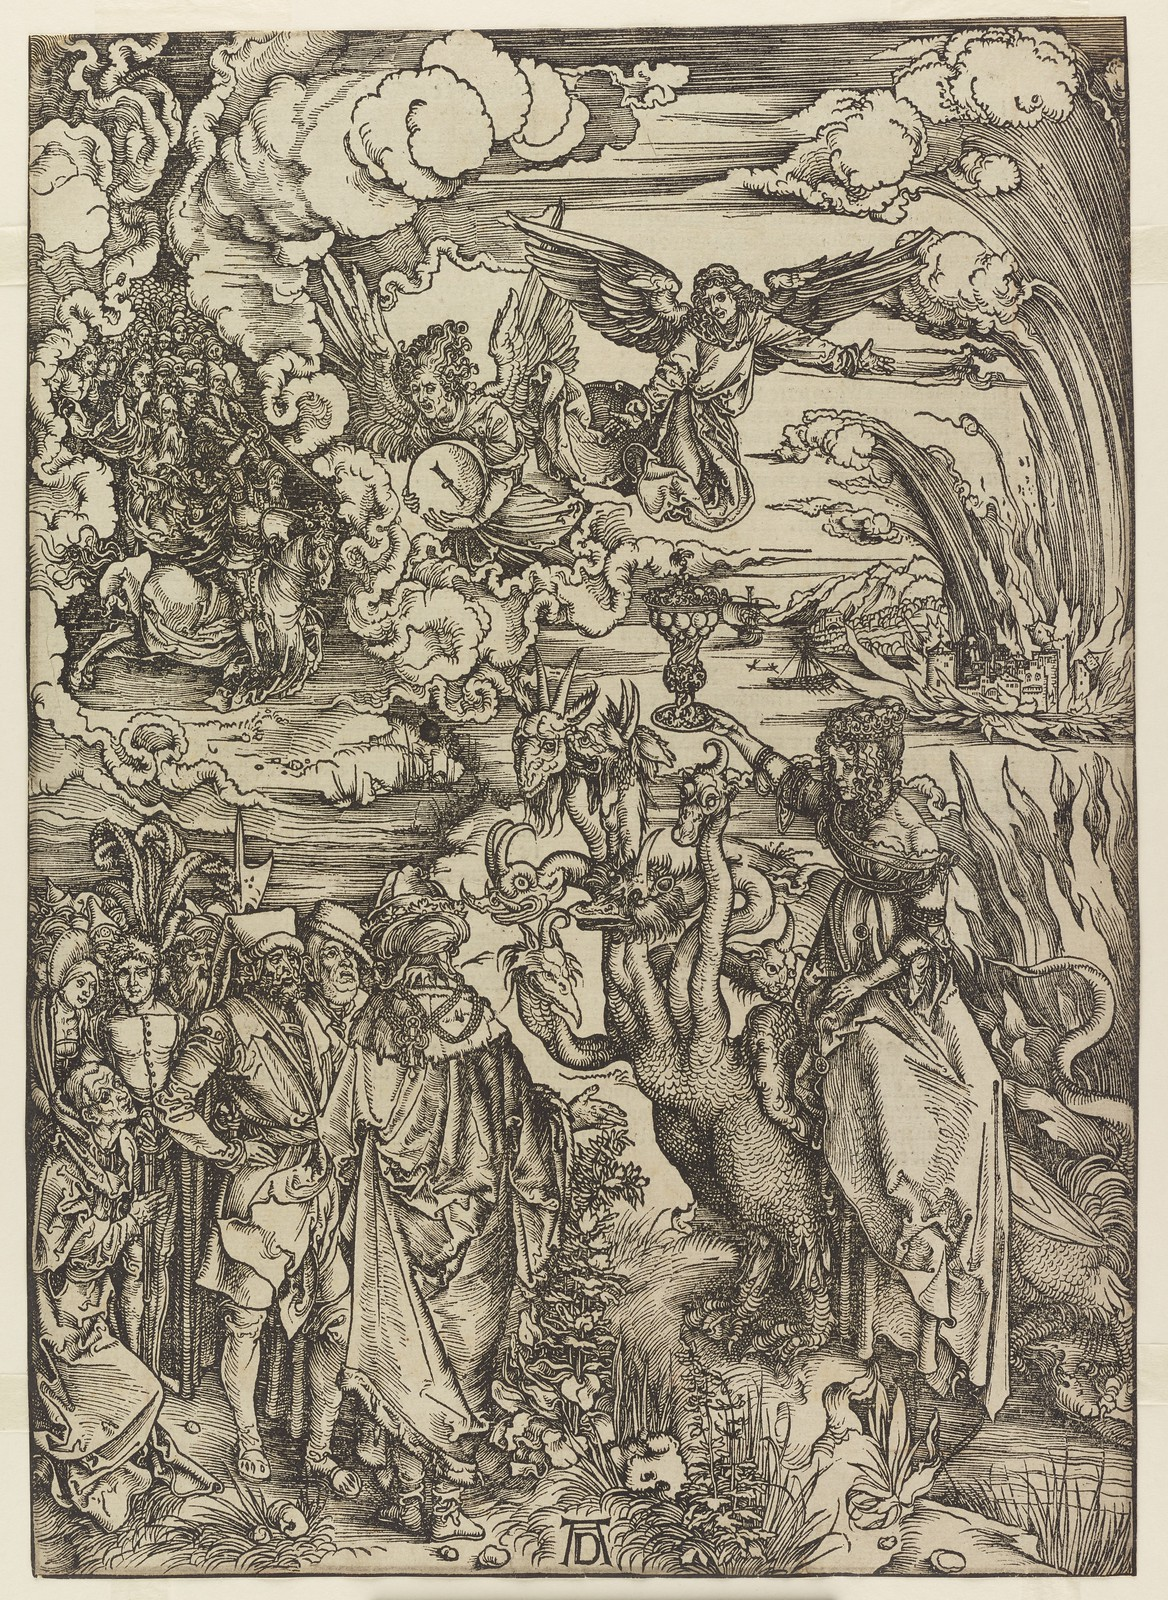 Albrecht Dürer - Whore of Babylon, Plate fourteen of fifteen from the Latin edition of The Apocalypse series, printed 1511